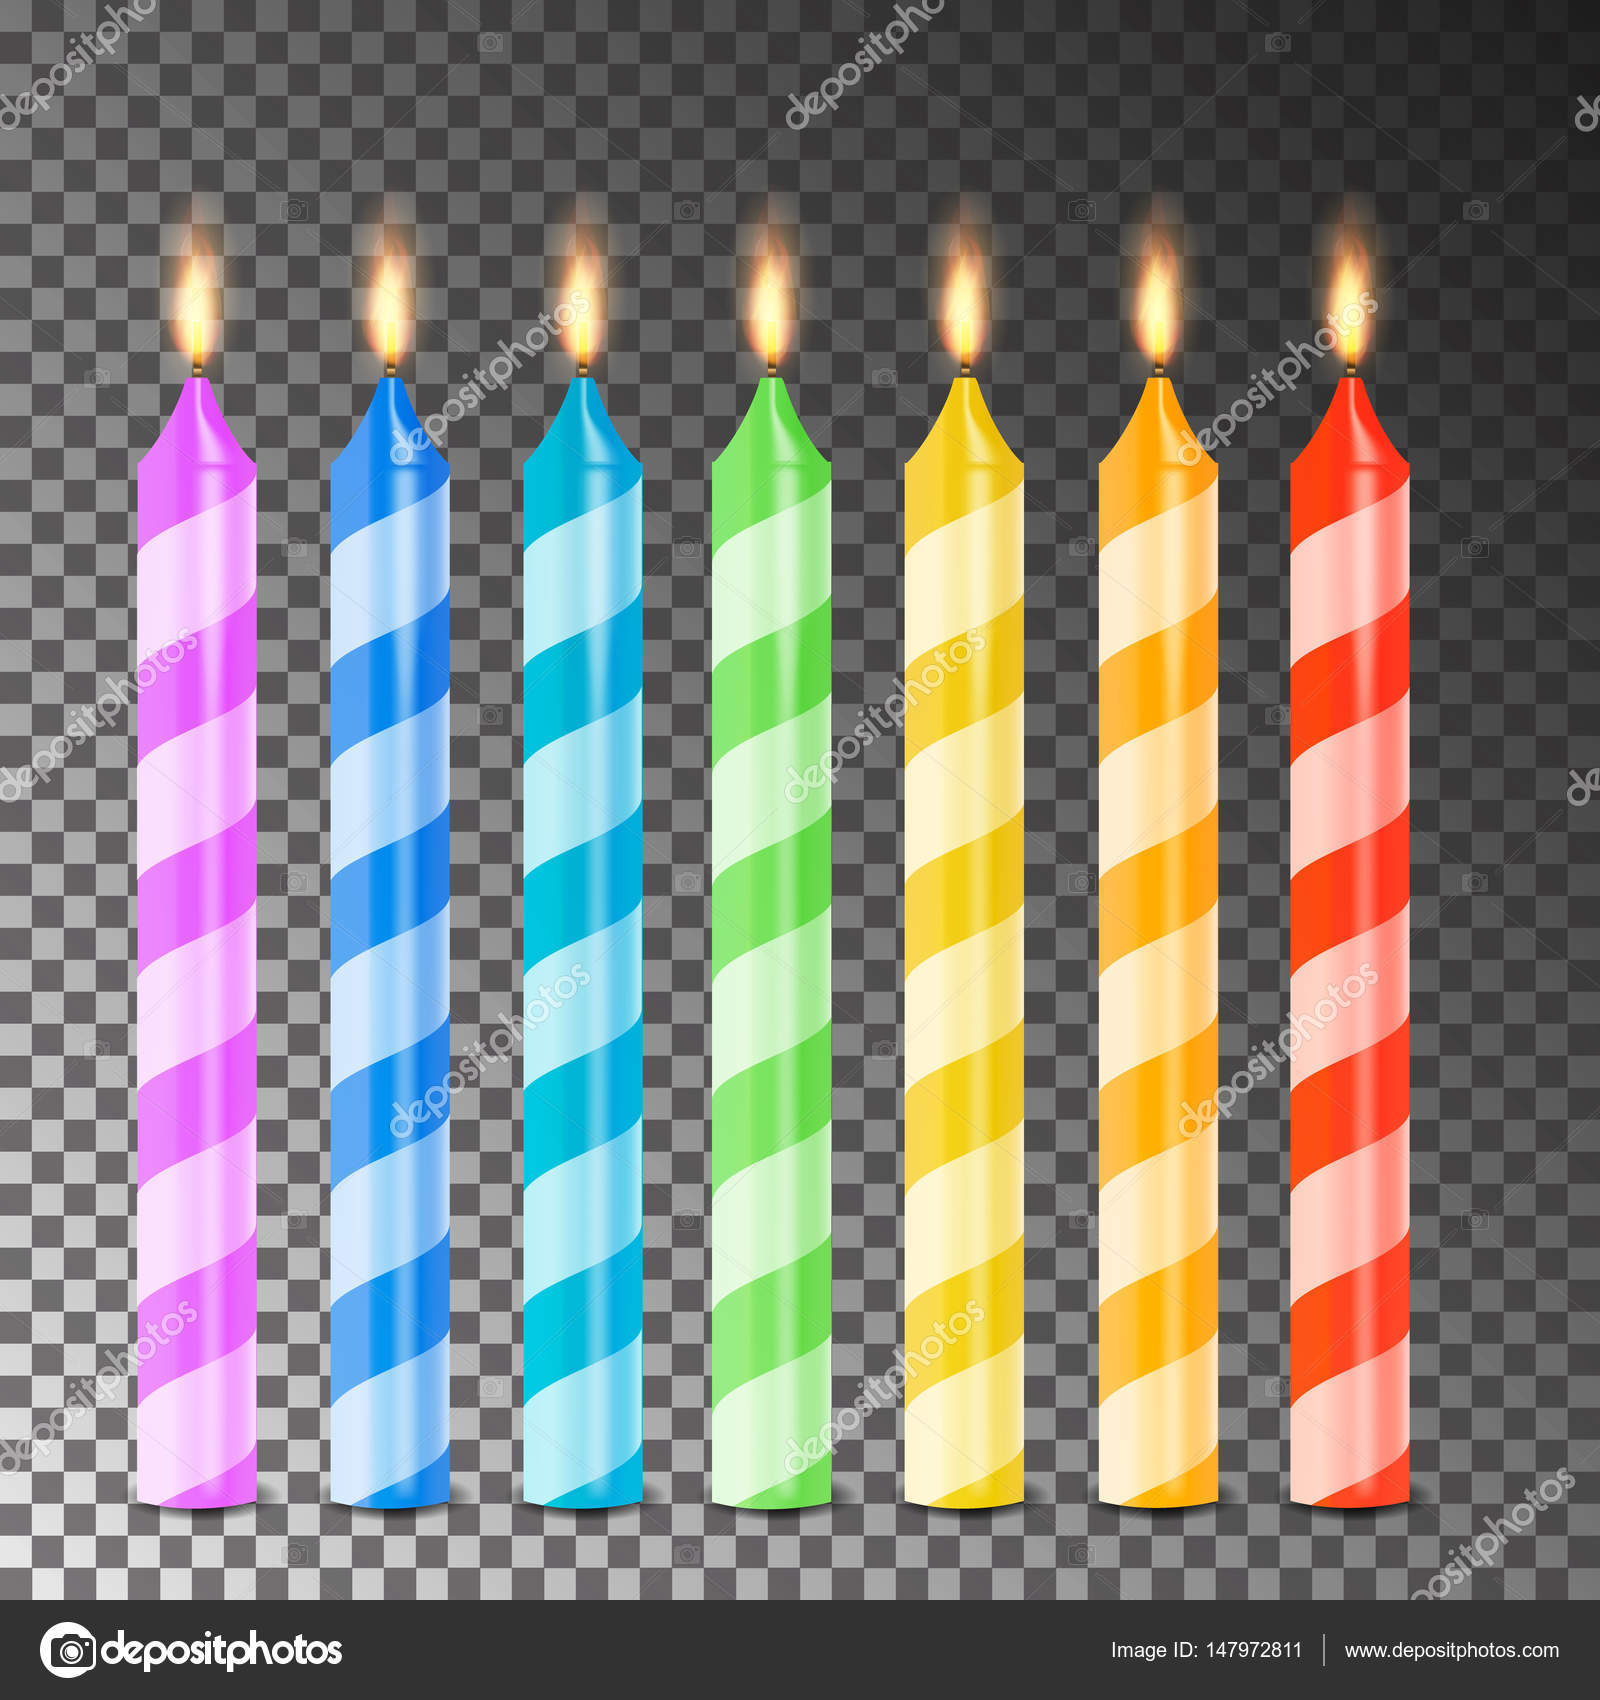 Burning 3D Realistic Dinner Candles Vector Birthday Cake Candles